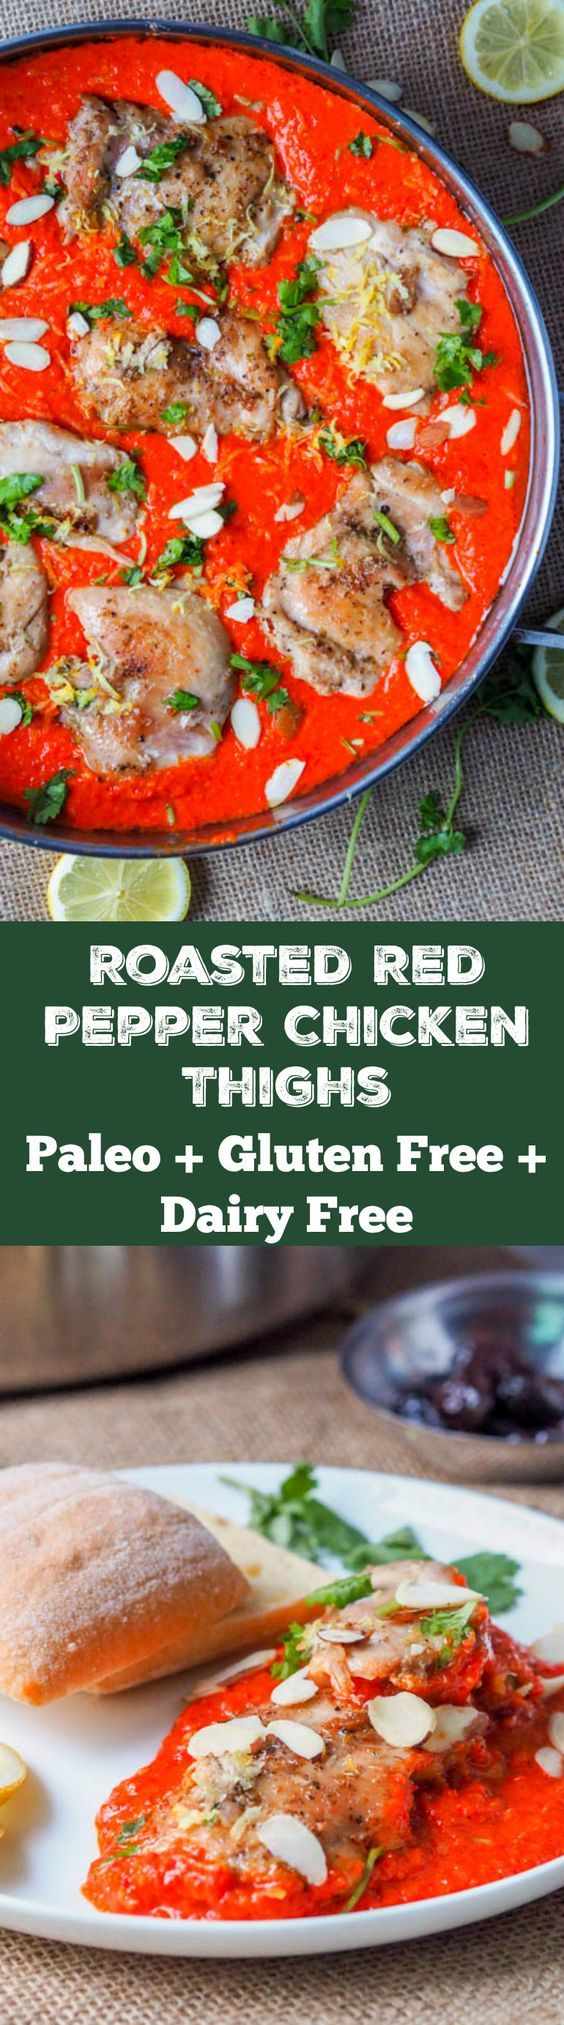 Seven Ingredient Roasted Red Pepper Chicken Is Made With Chicken Thighs Cooked In A Super Creamy Roa Free Chicken Recipes Paleo Chicken Recipes Chicken Recipes